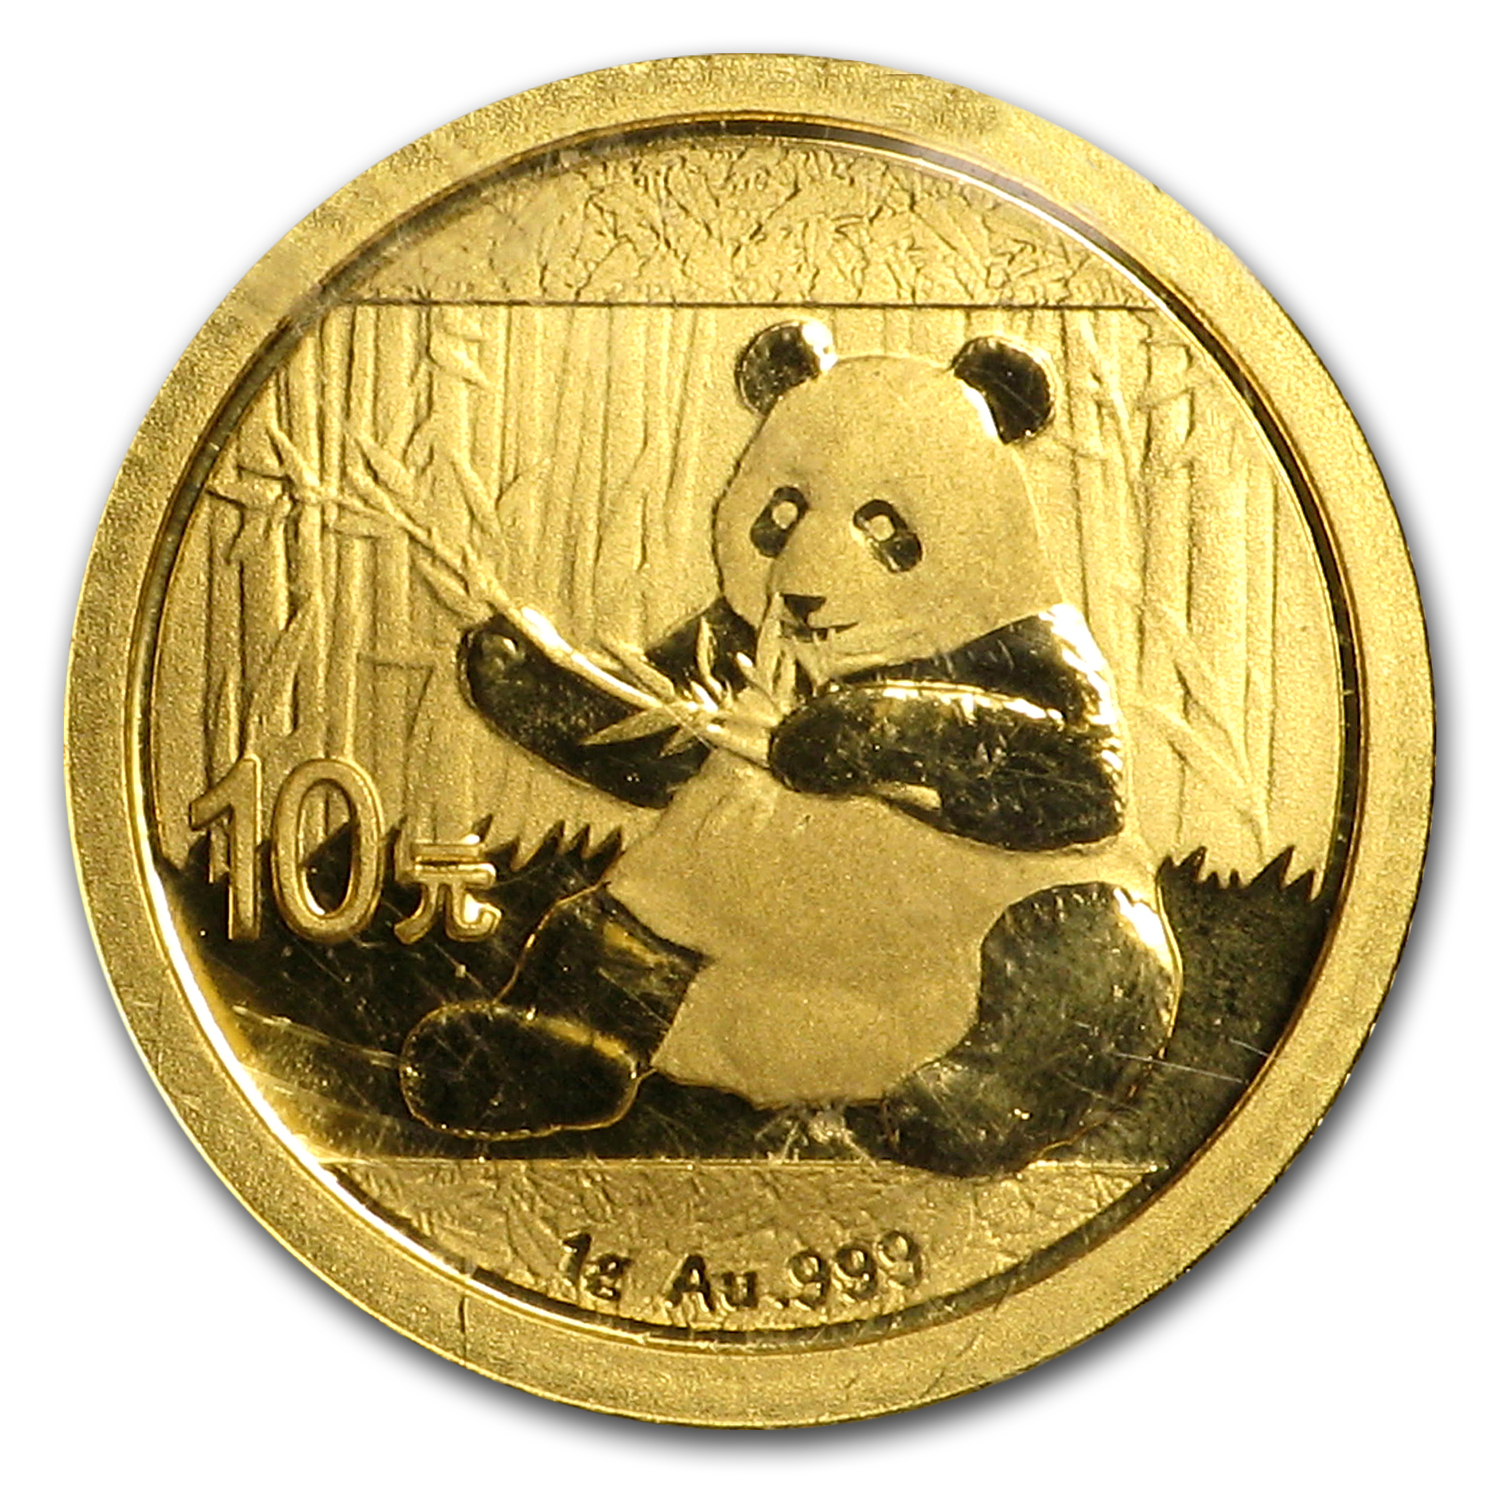 2017 China 1 gram Gold Panda BU (Sealed)